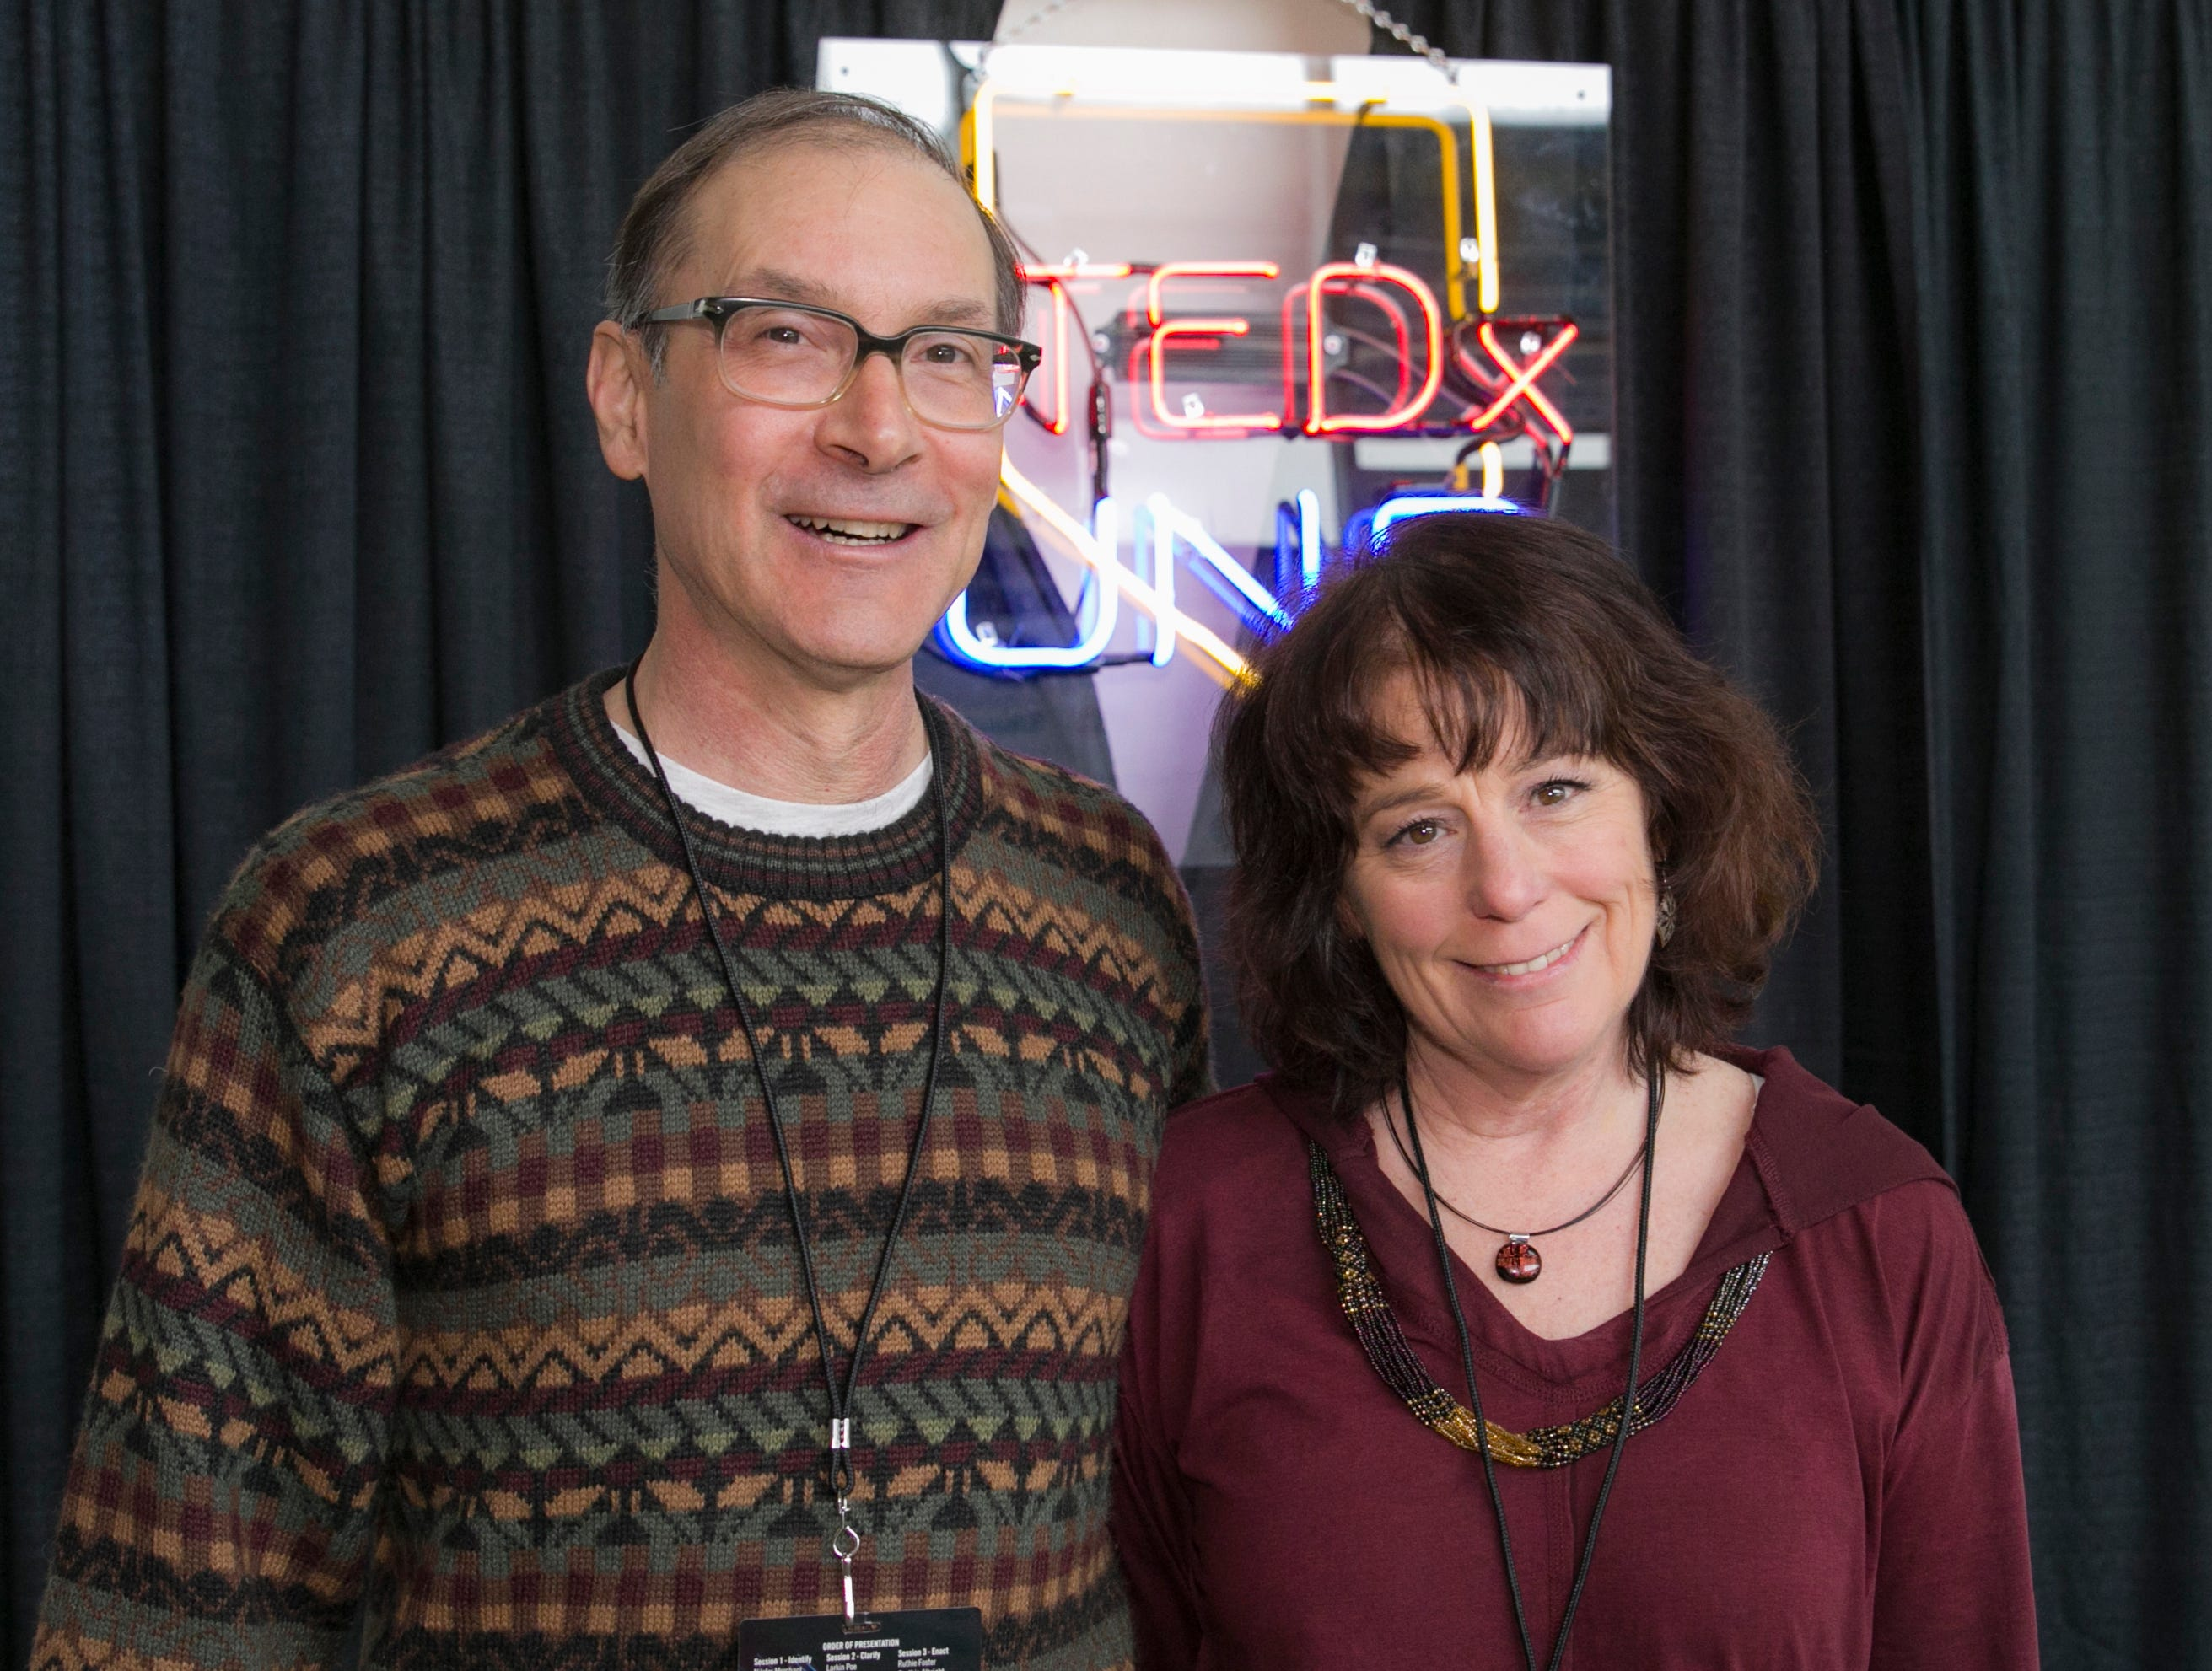 Ron Bradley and Linda McNeil during TEDx University of Nevada 2019 at the Reno-Sparks Convention Center on Saturday, Feb. 23, 2019.